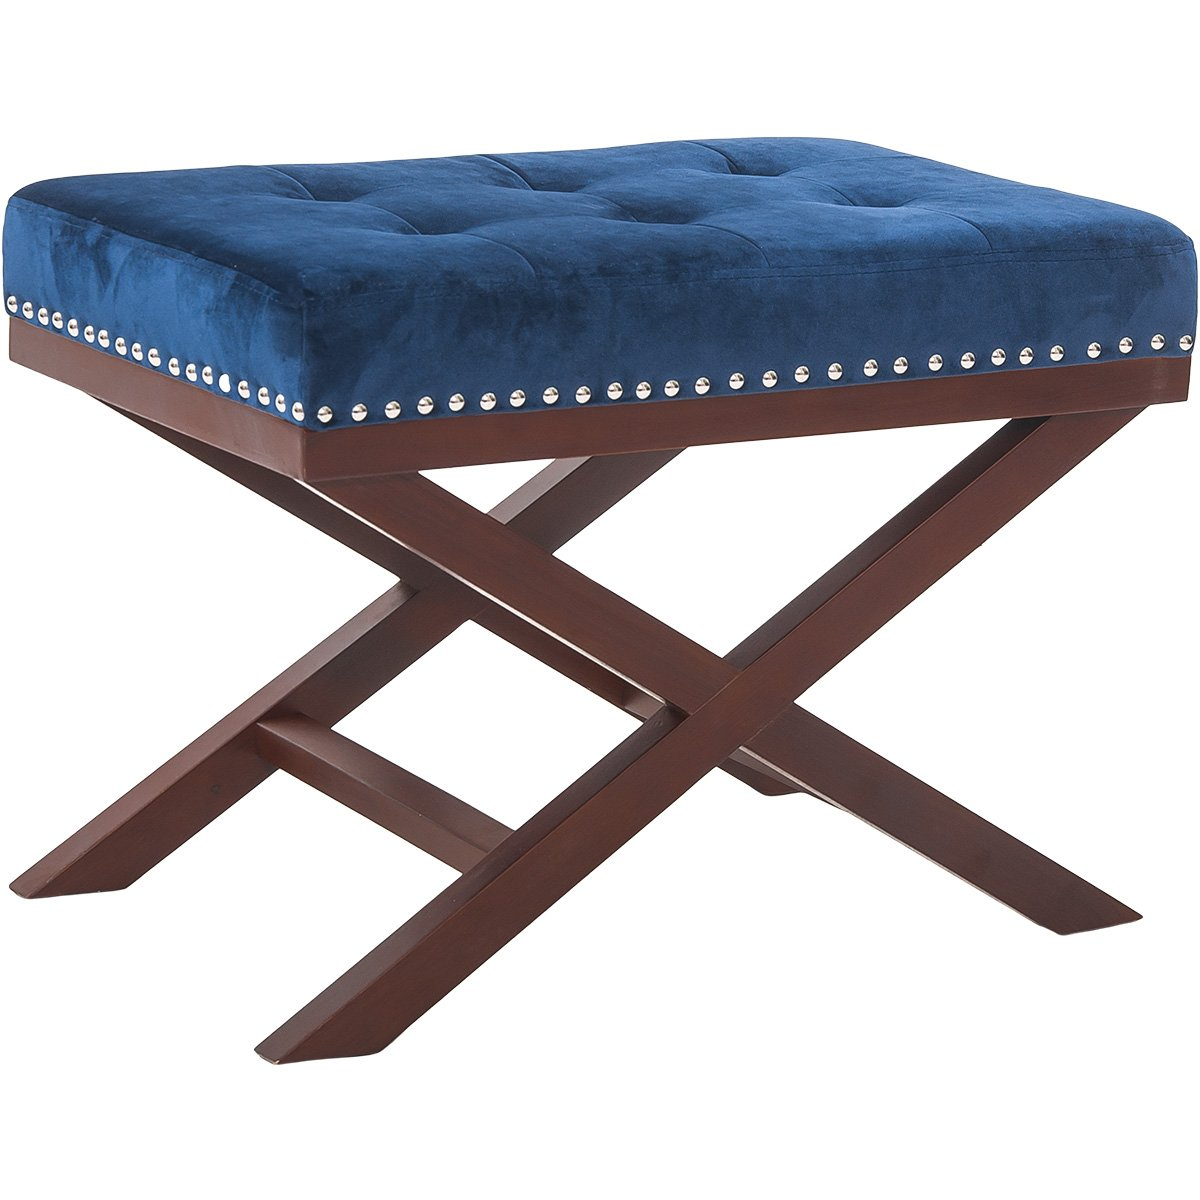 Harper&Bright Designs Upholstered Tufted X Bench Ottoman with Nailhead Detail and Solid Wood Legs (Indigo)